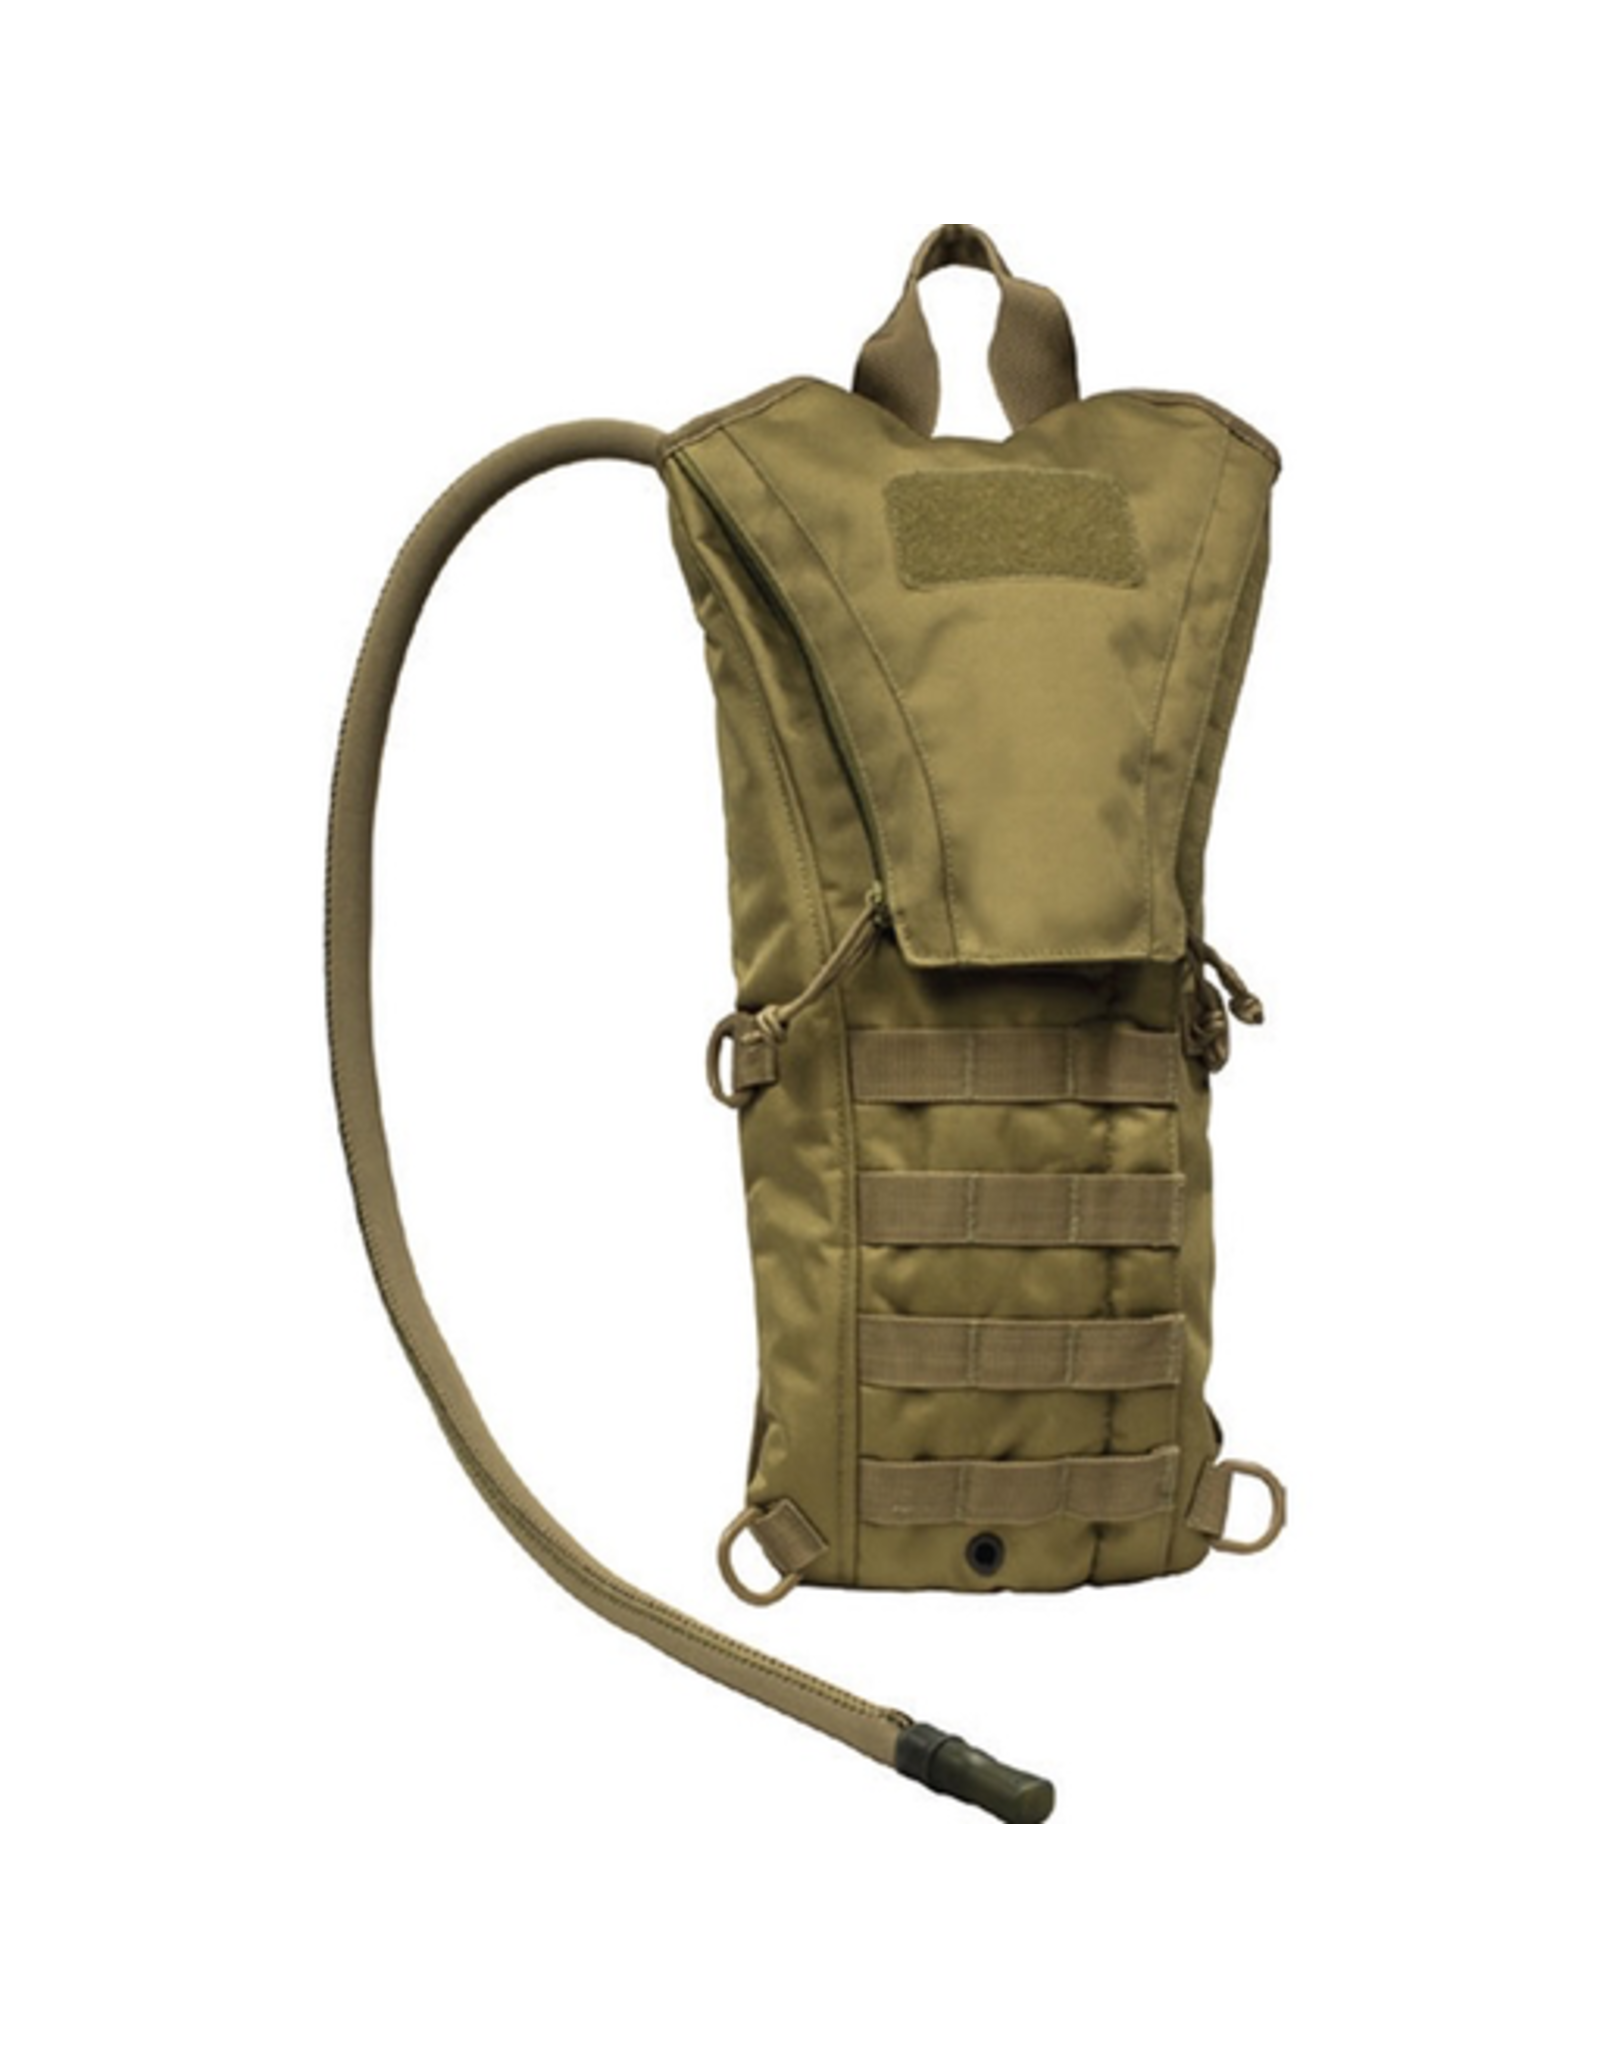 Mil-Spex MIL-SPEX Tactical Hydration Pack- Coyote